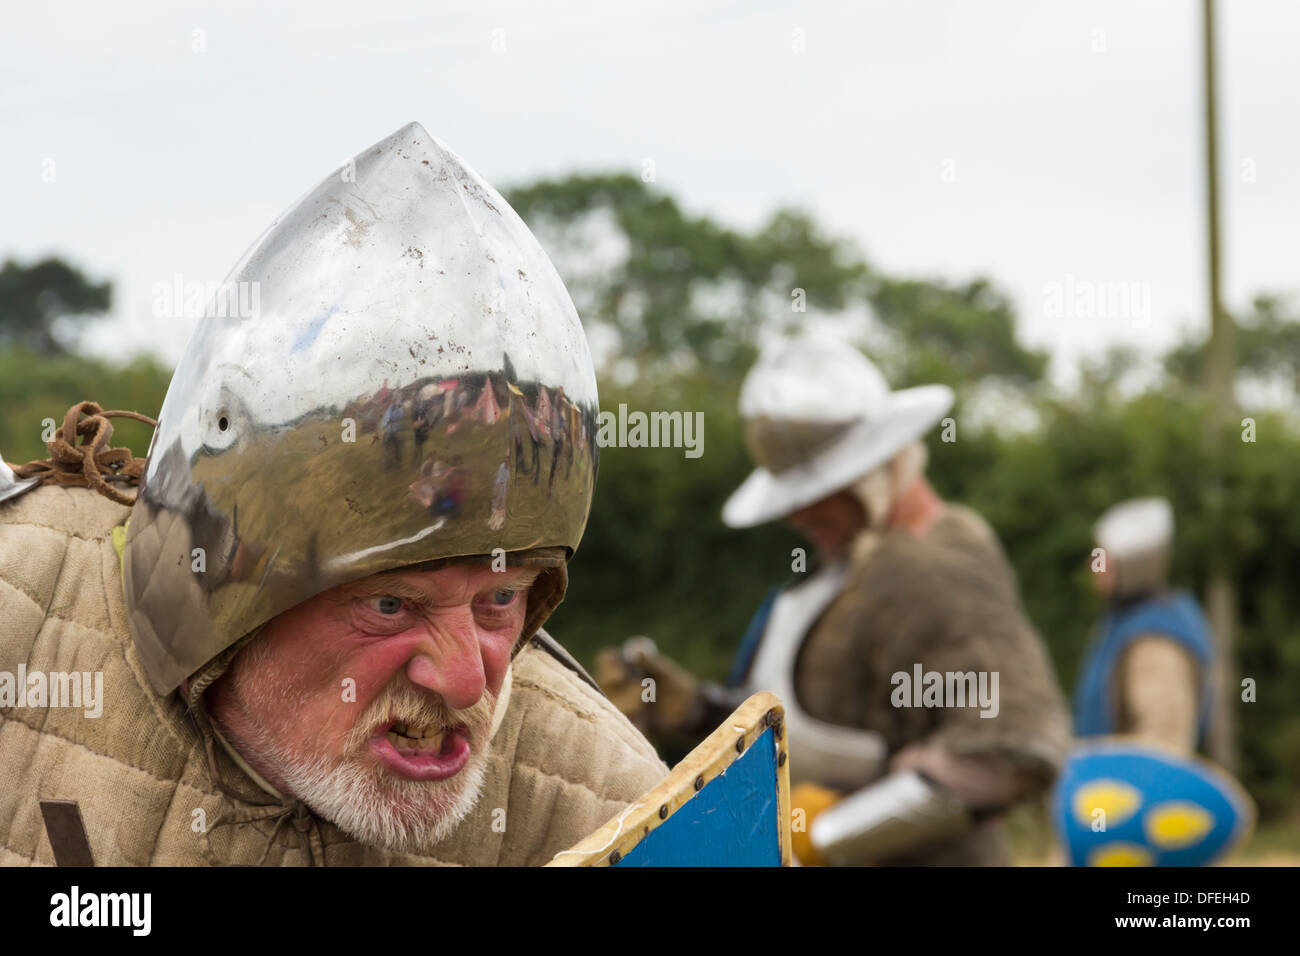 The Shrewsbury Levy medieval reenactment group at Battlefield1403 visitor centre marking the anniversary of Battle - Stock Image